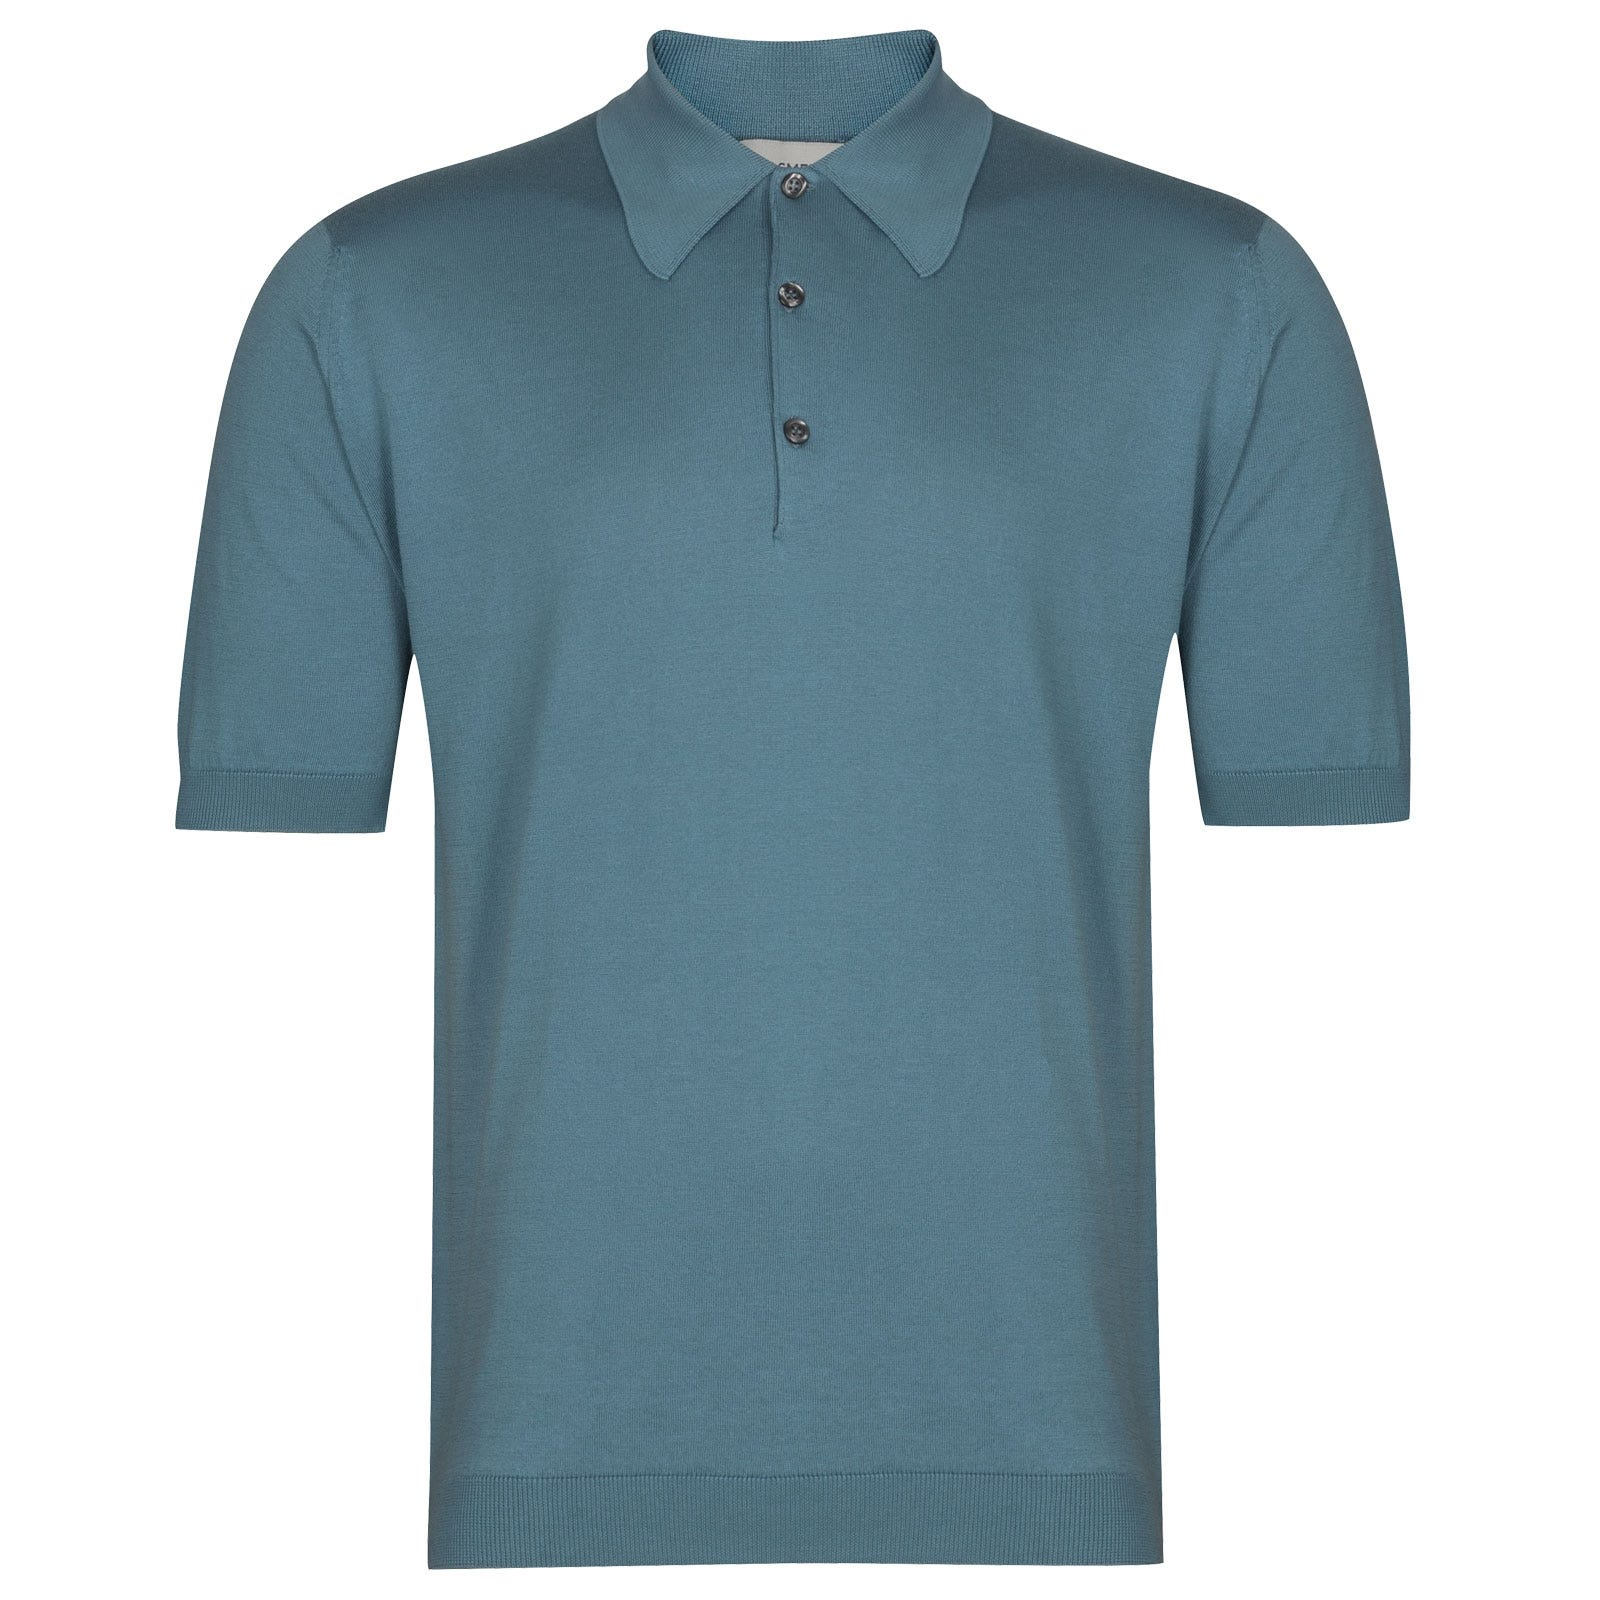 John Smedley Isis in Dewdrop Blue Shirt-LGE